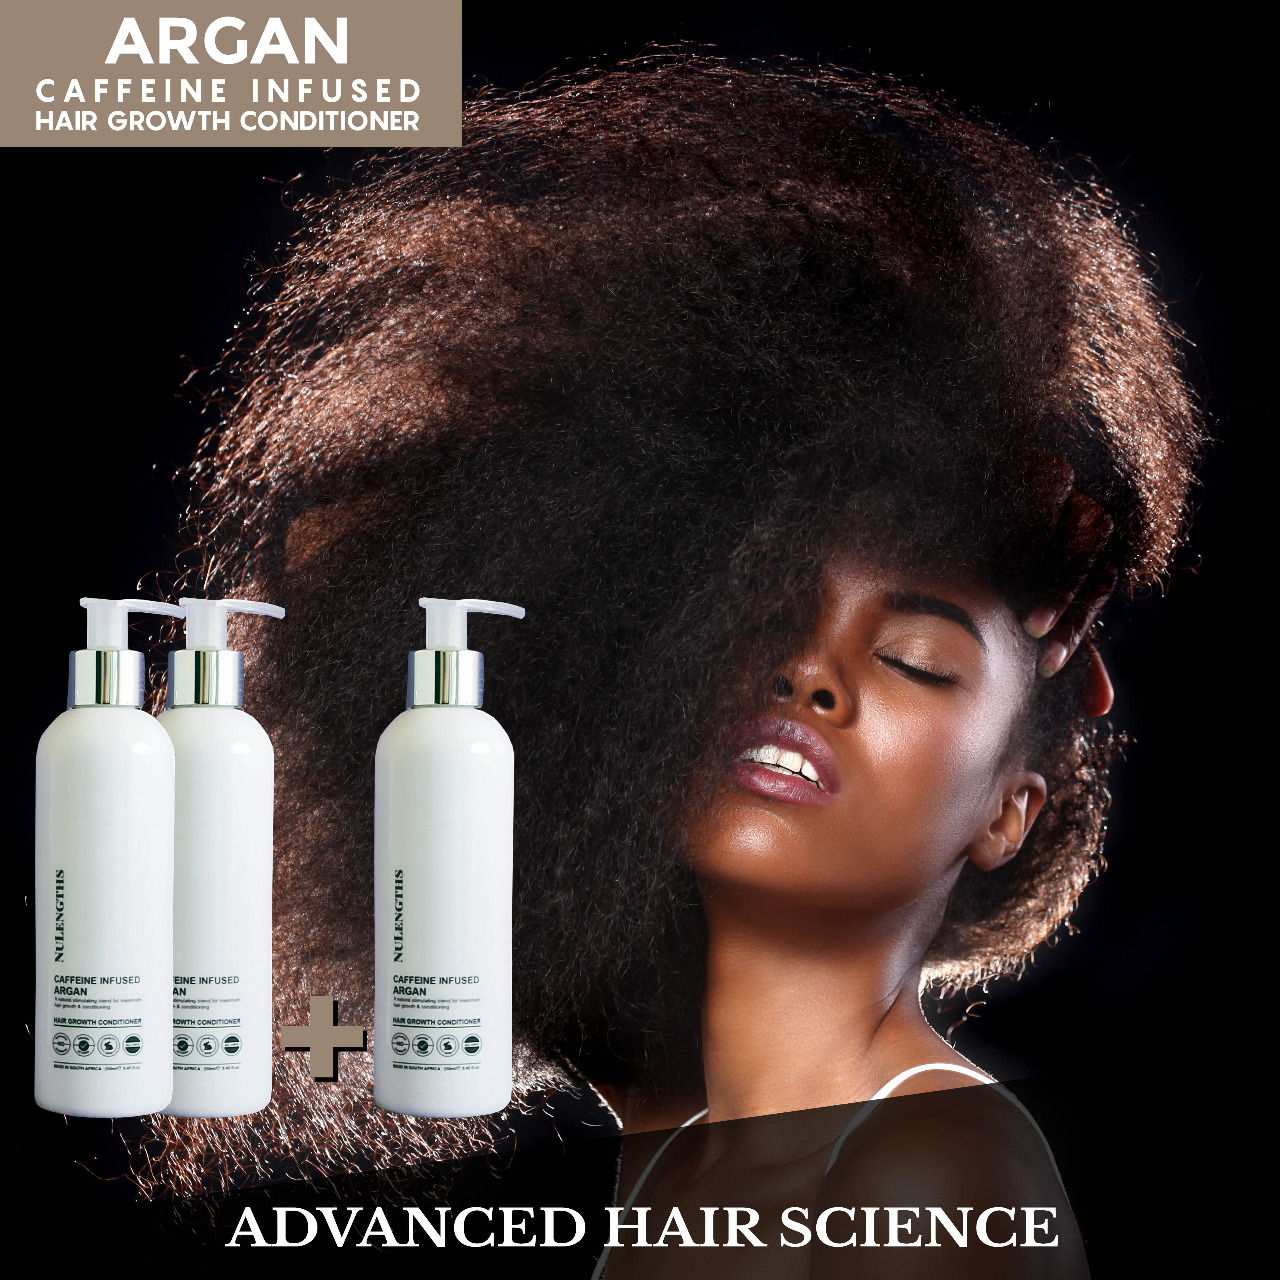 *Limited Special* Buy 2 get 1 Free Caffeine Infused Argan Hair Growth Conditioner